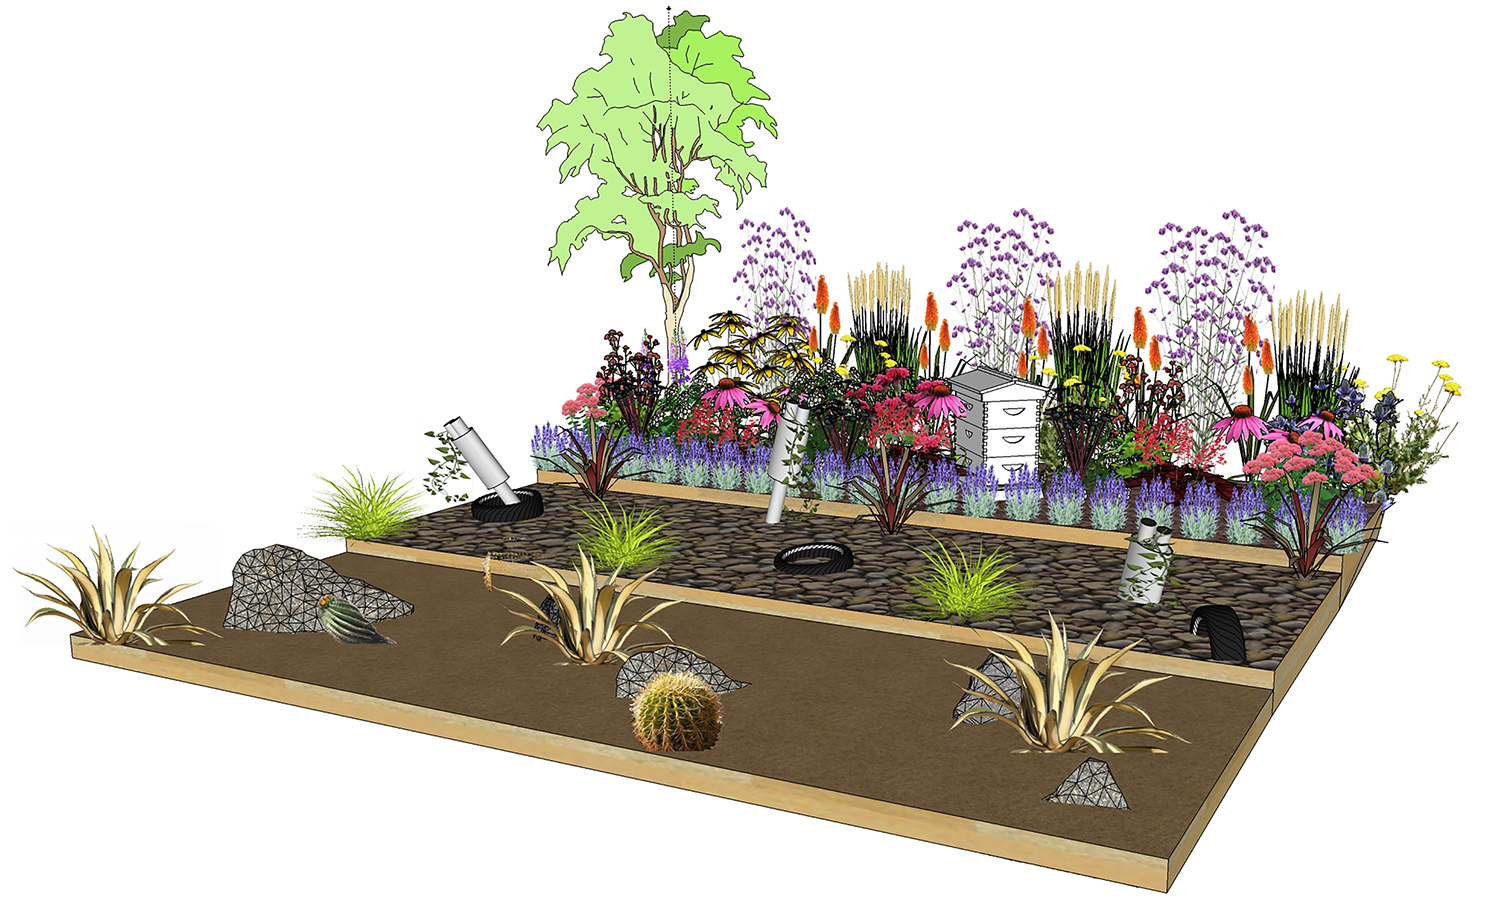 Shrewsbury flower show hornby garden designs garden for Garden planting ideas uk